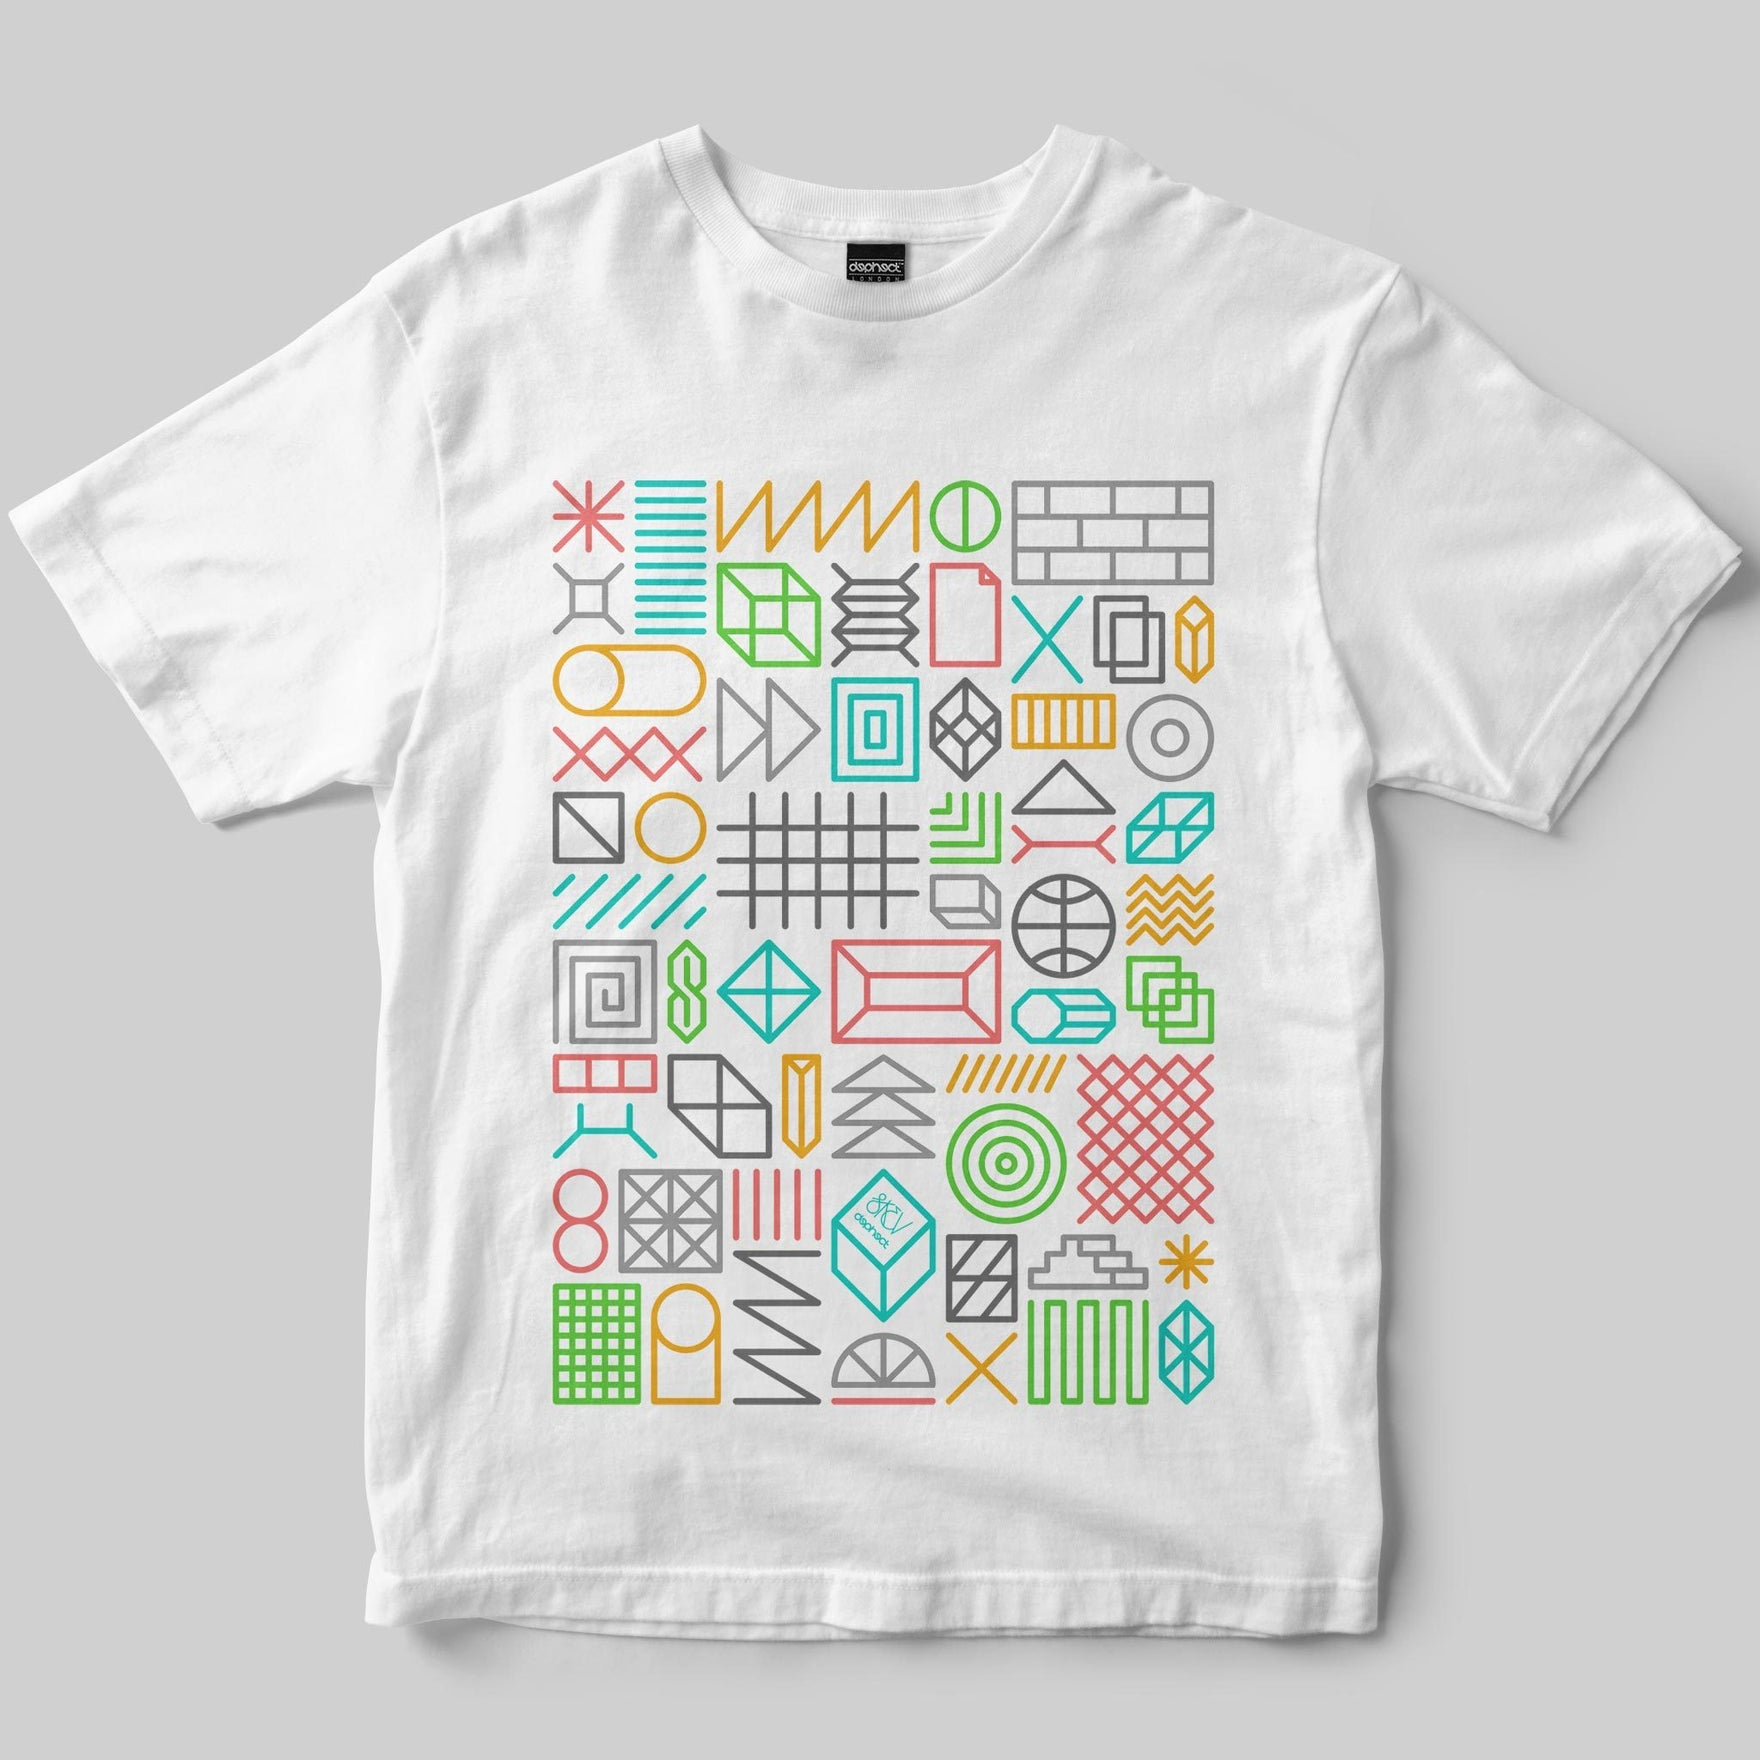 Things T-Shirt / White / by Skev